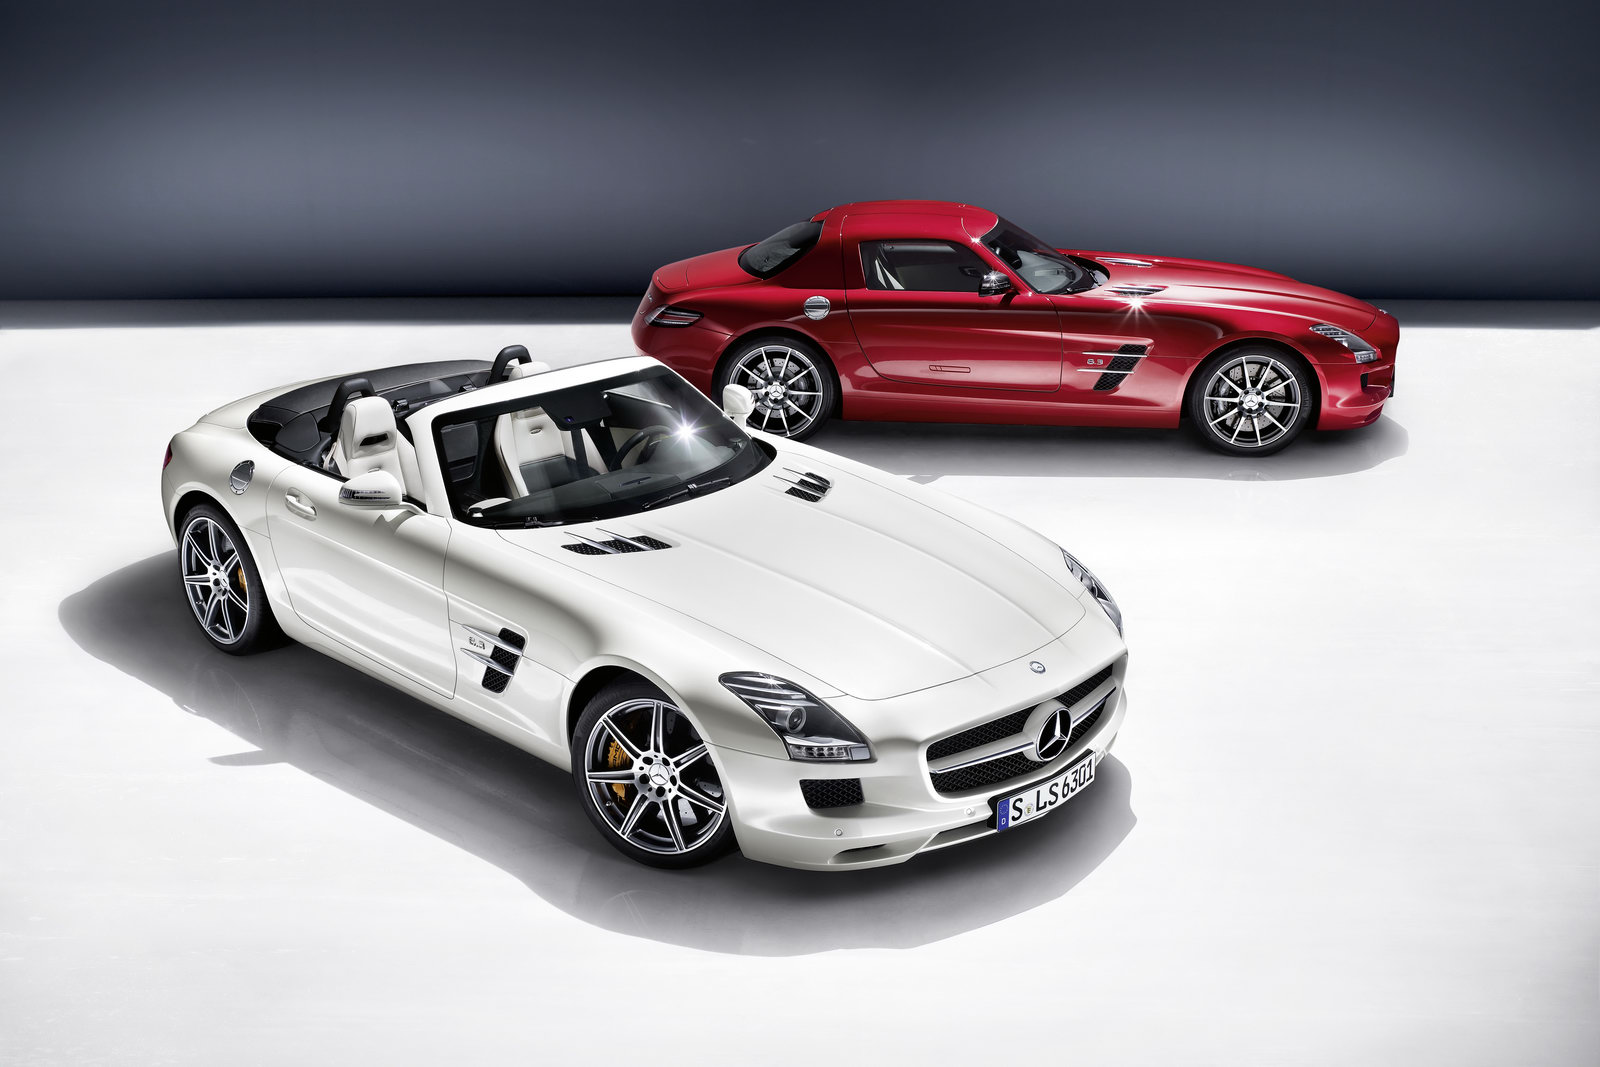 automobiles tout savoir sur les marques mercedes sls amg roadster. Black Bedroom Furniture Sets. Home Design Ideas